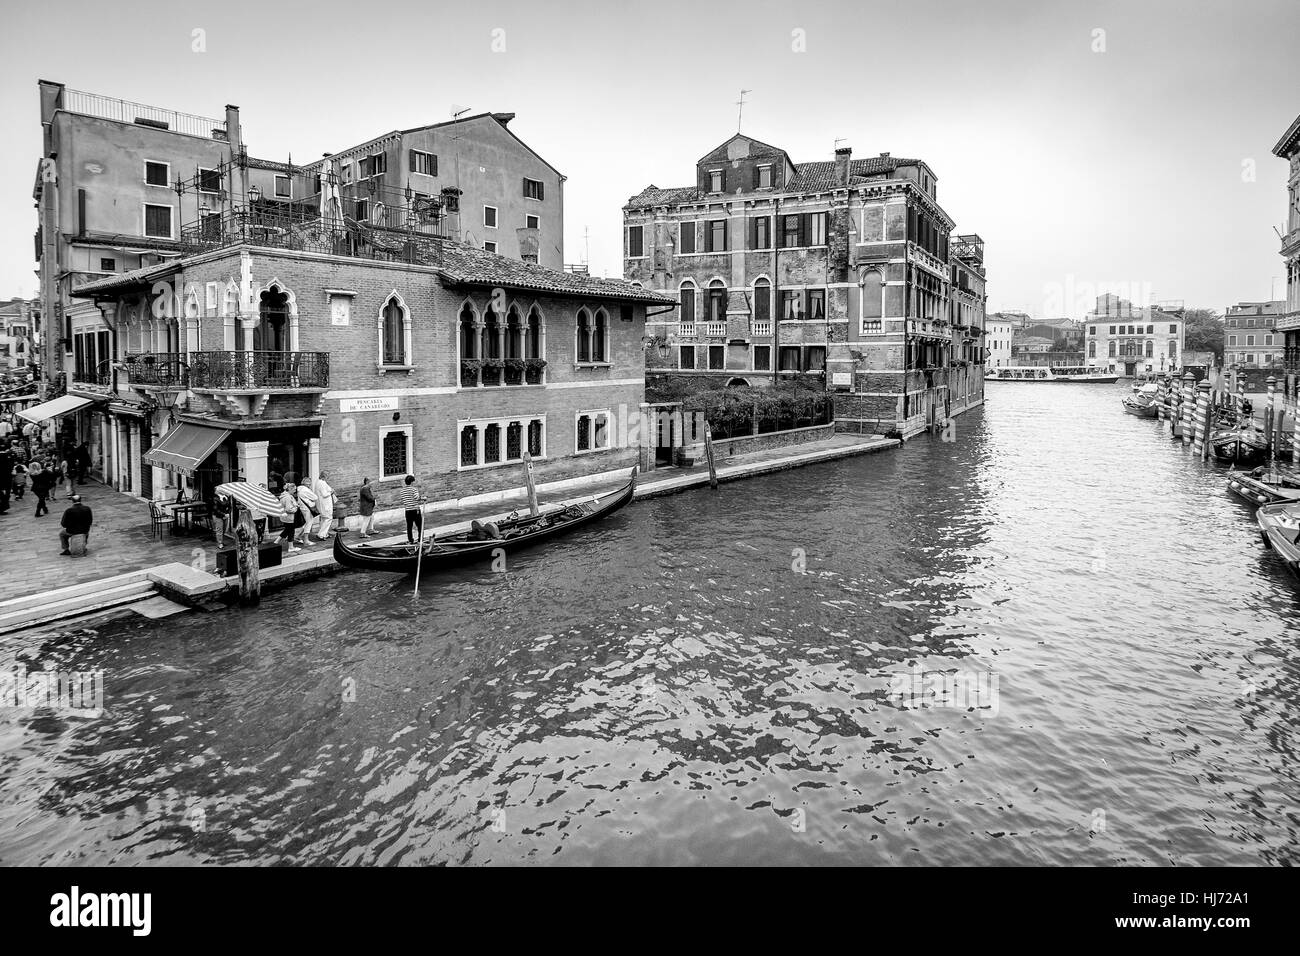 Venice, Italy - October 16, 2016: view of a Venice canal in Italy with gondola and tourists - Stock Image